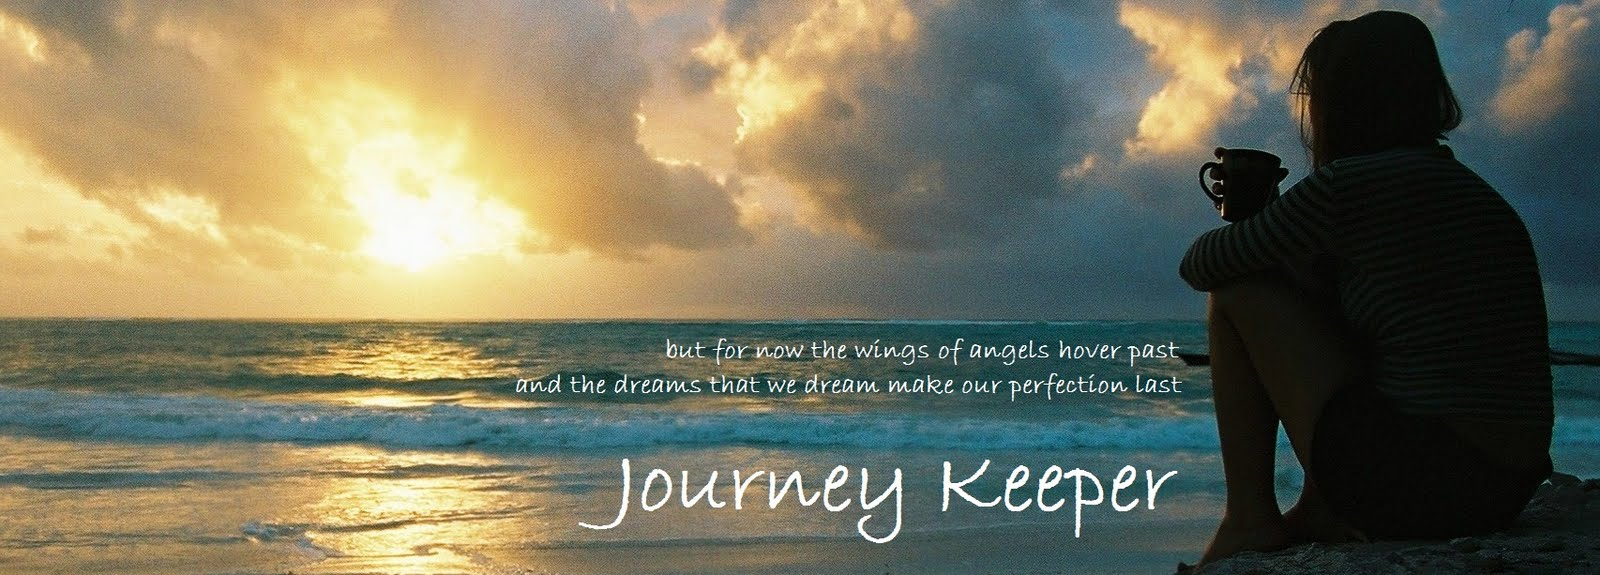 Journey Keeper